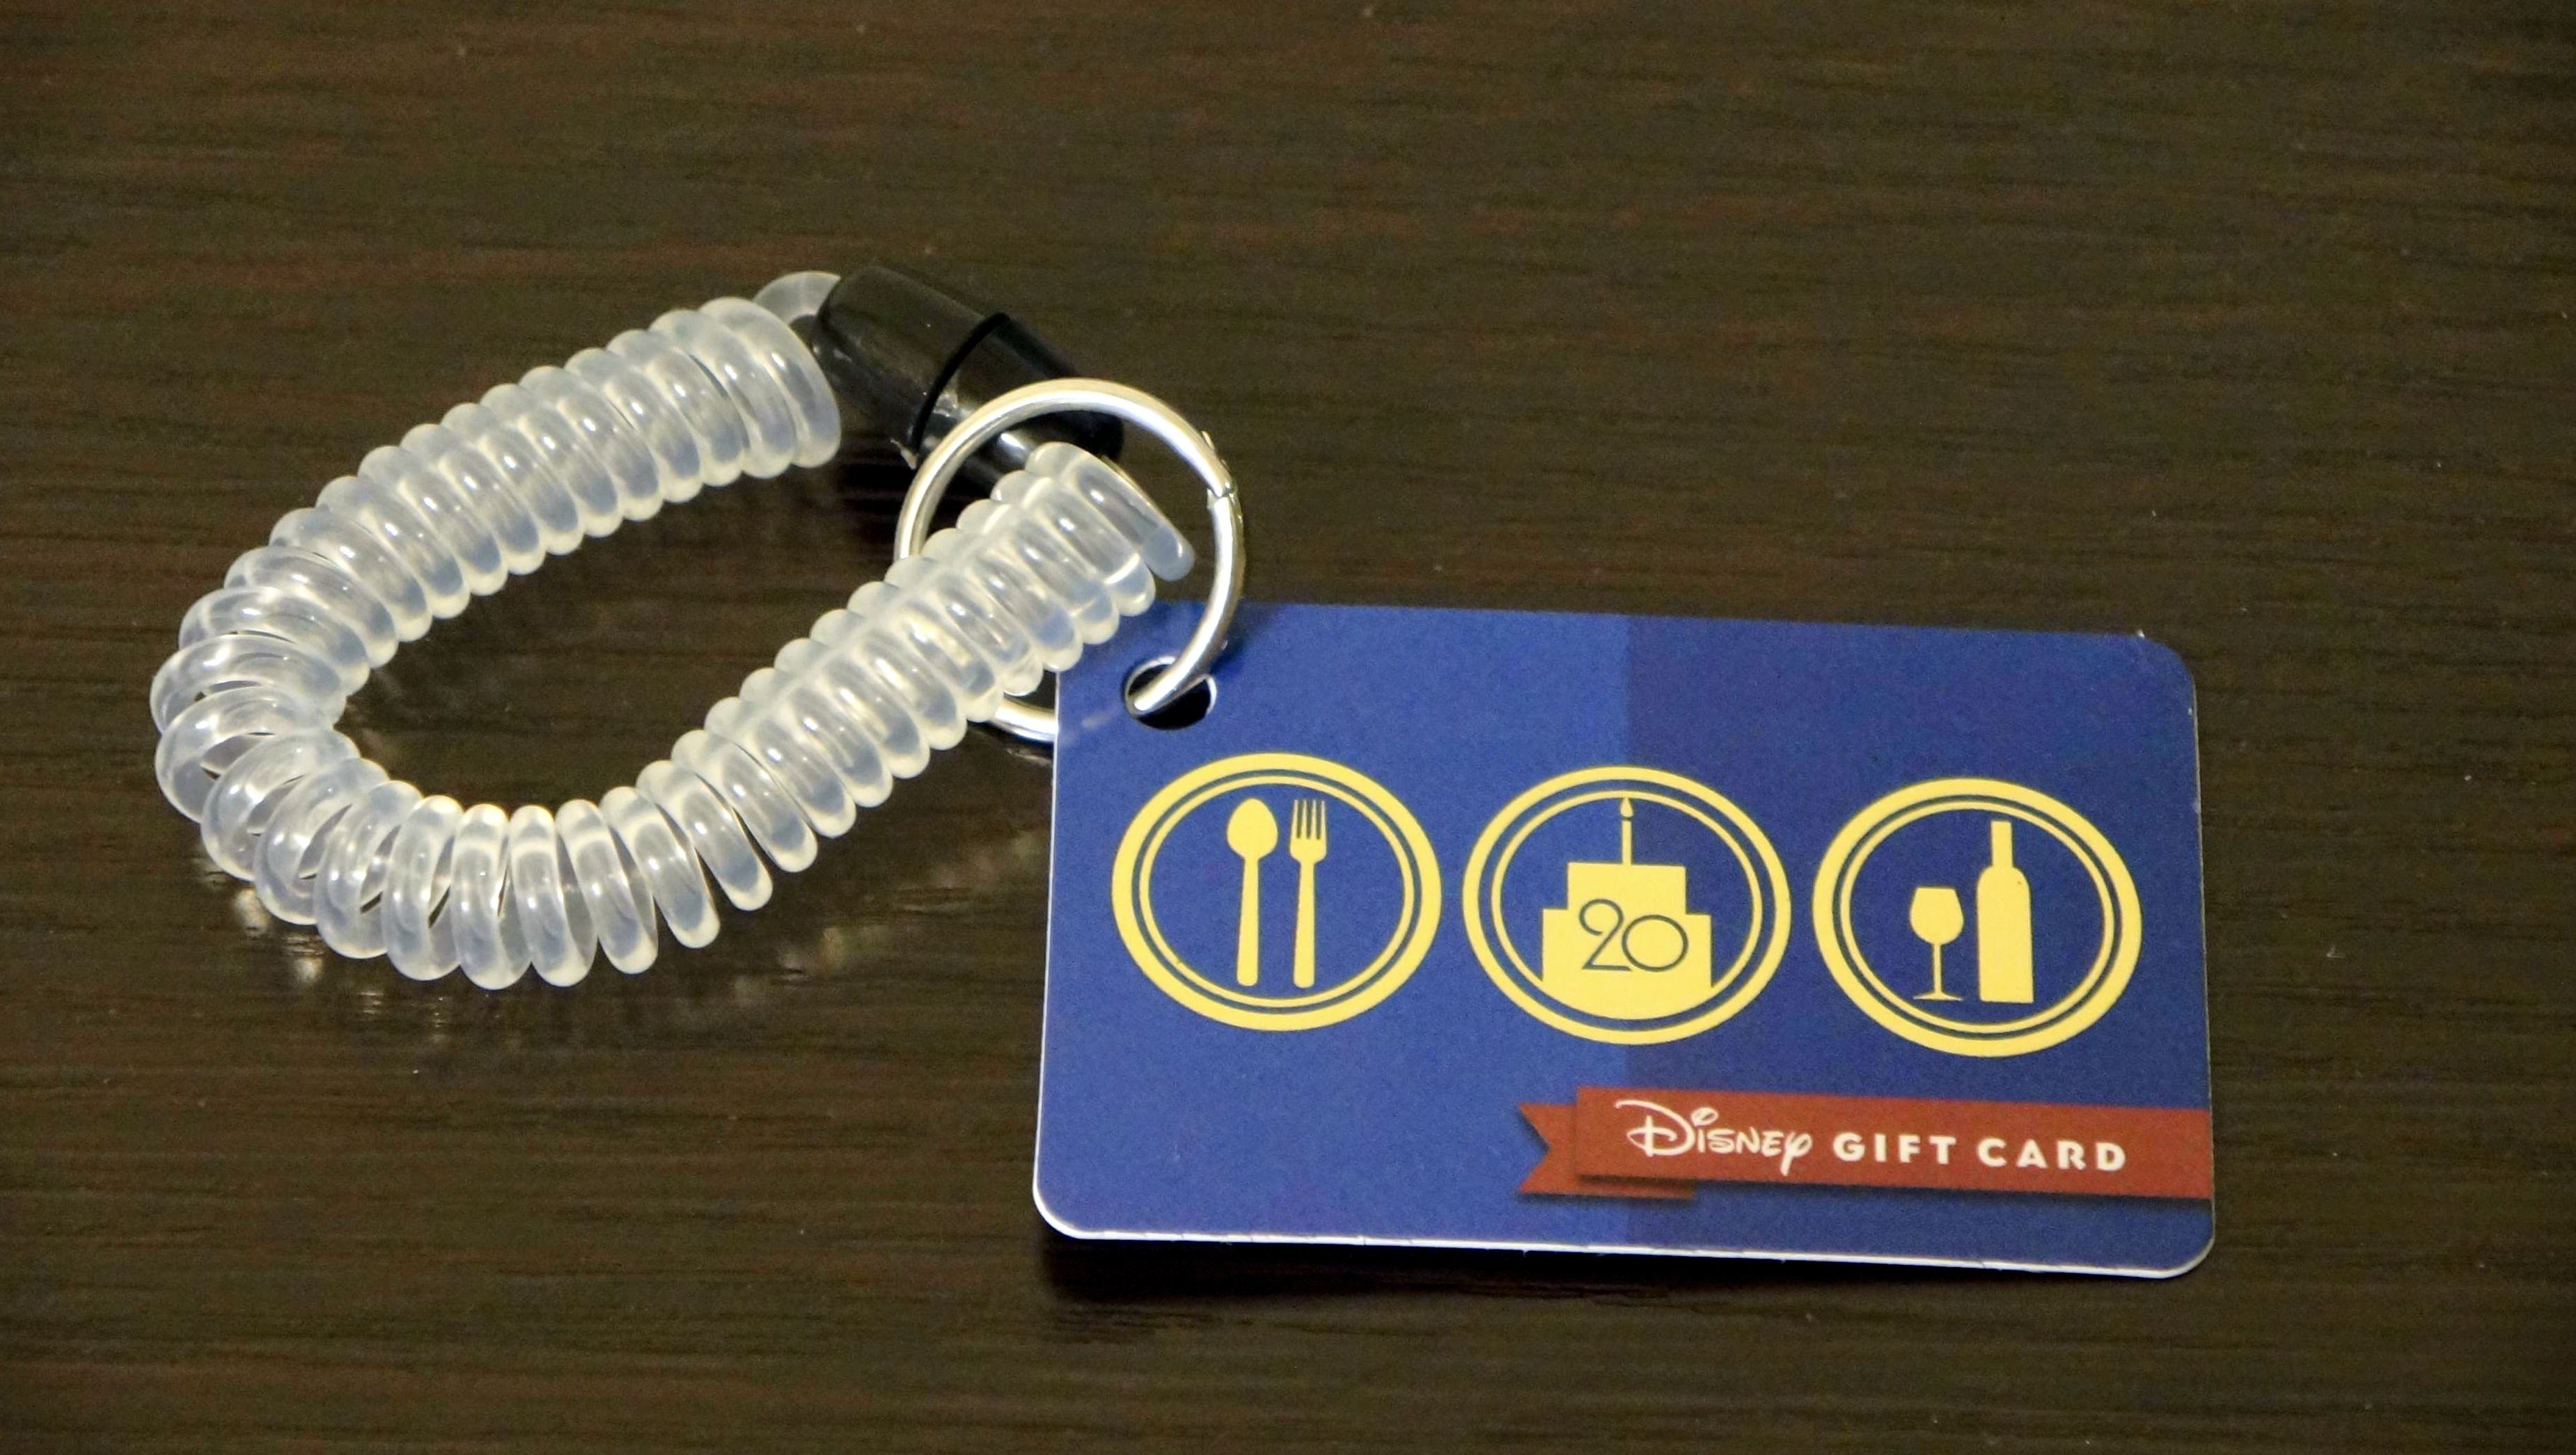 Paying Your Way Managing Disney Gift Cards